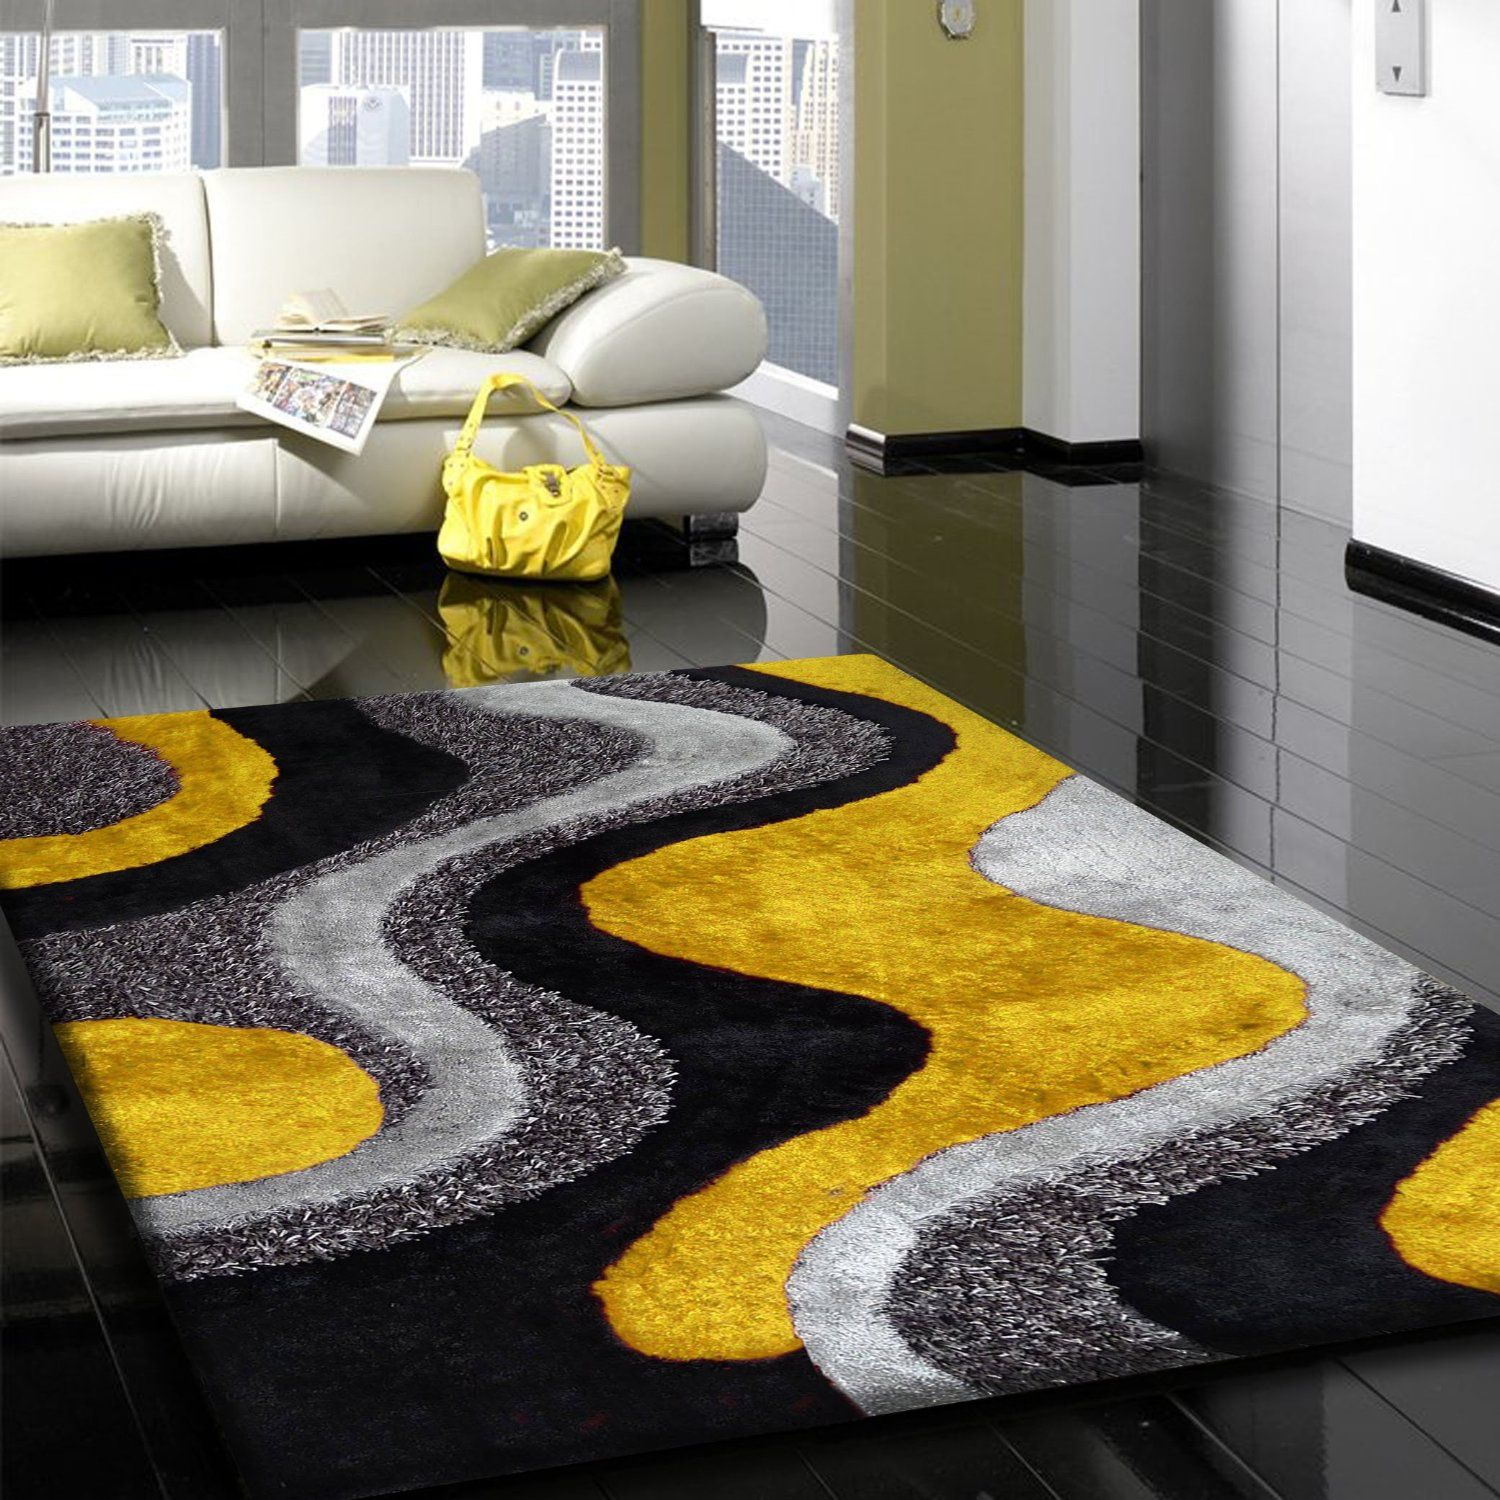 Yellow Living Room Rugs Where To Buy Cheap Furniture Pin By Paula Holloman On Decor Nice Grey Pertaining Existing House